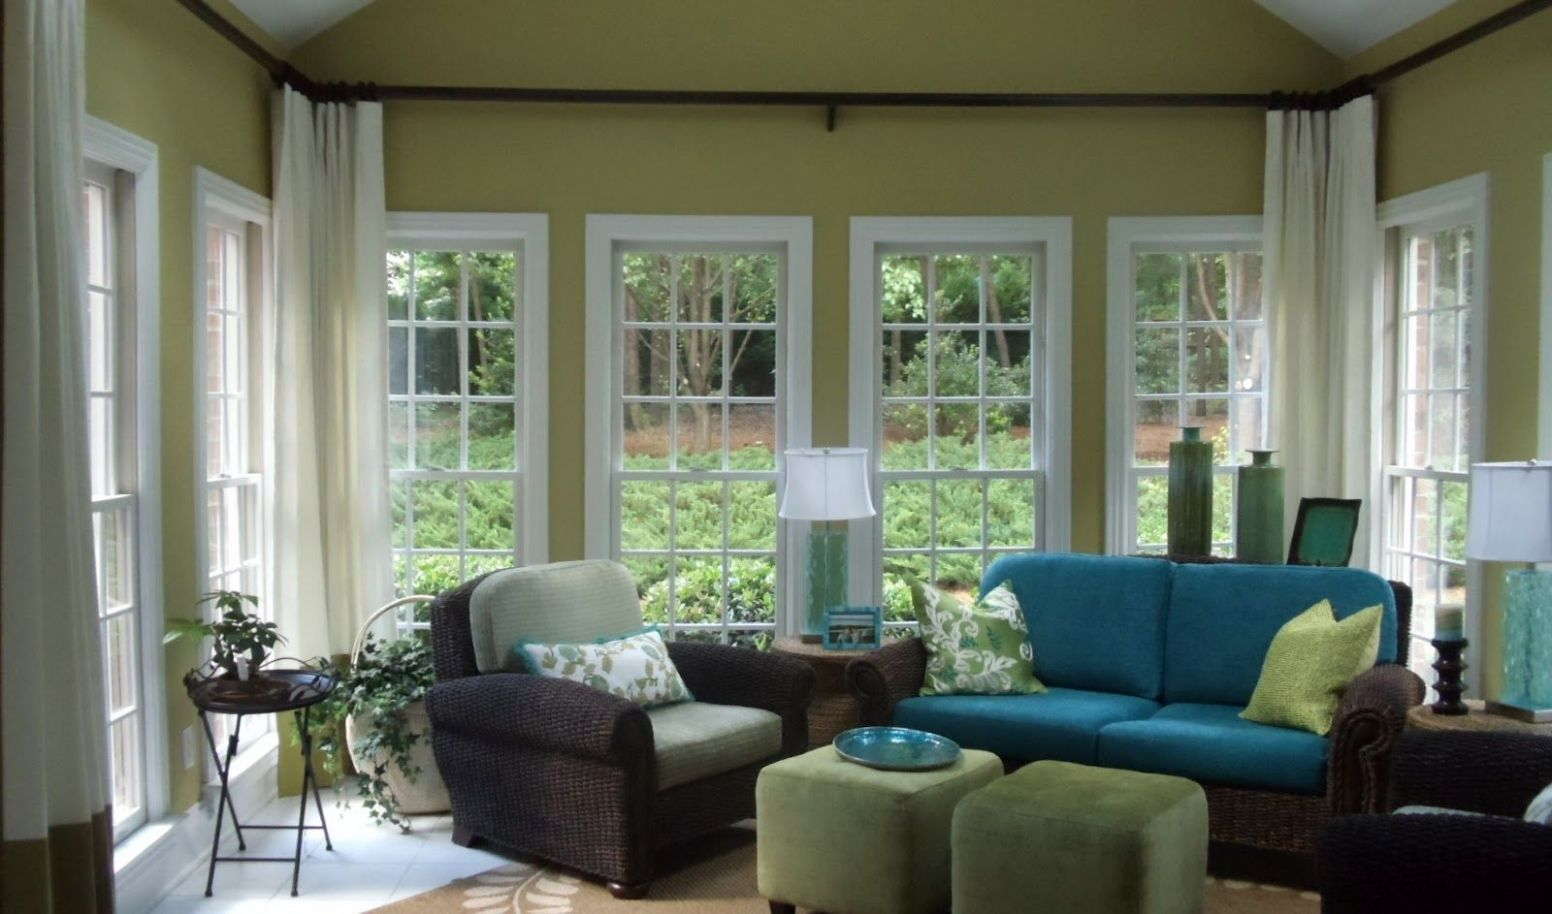 Sun room curtain idea Interior, Amusing Sunroom Interior Design ..